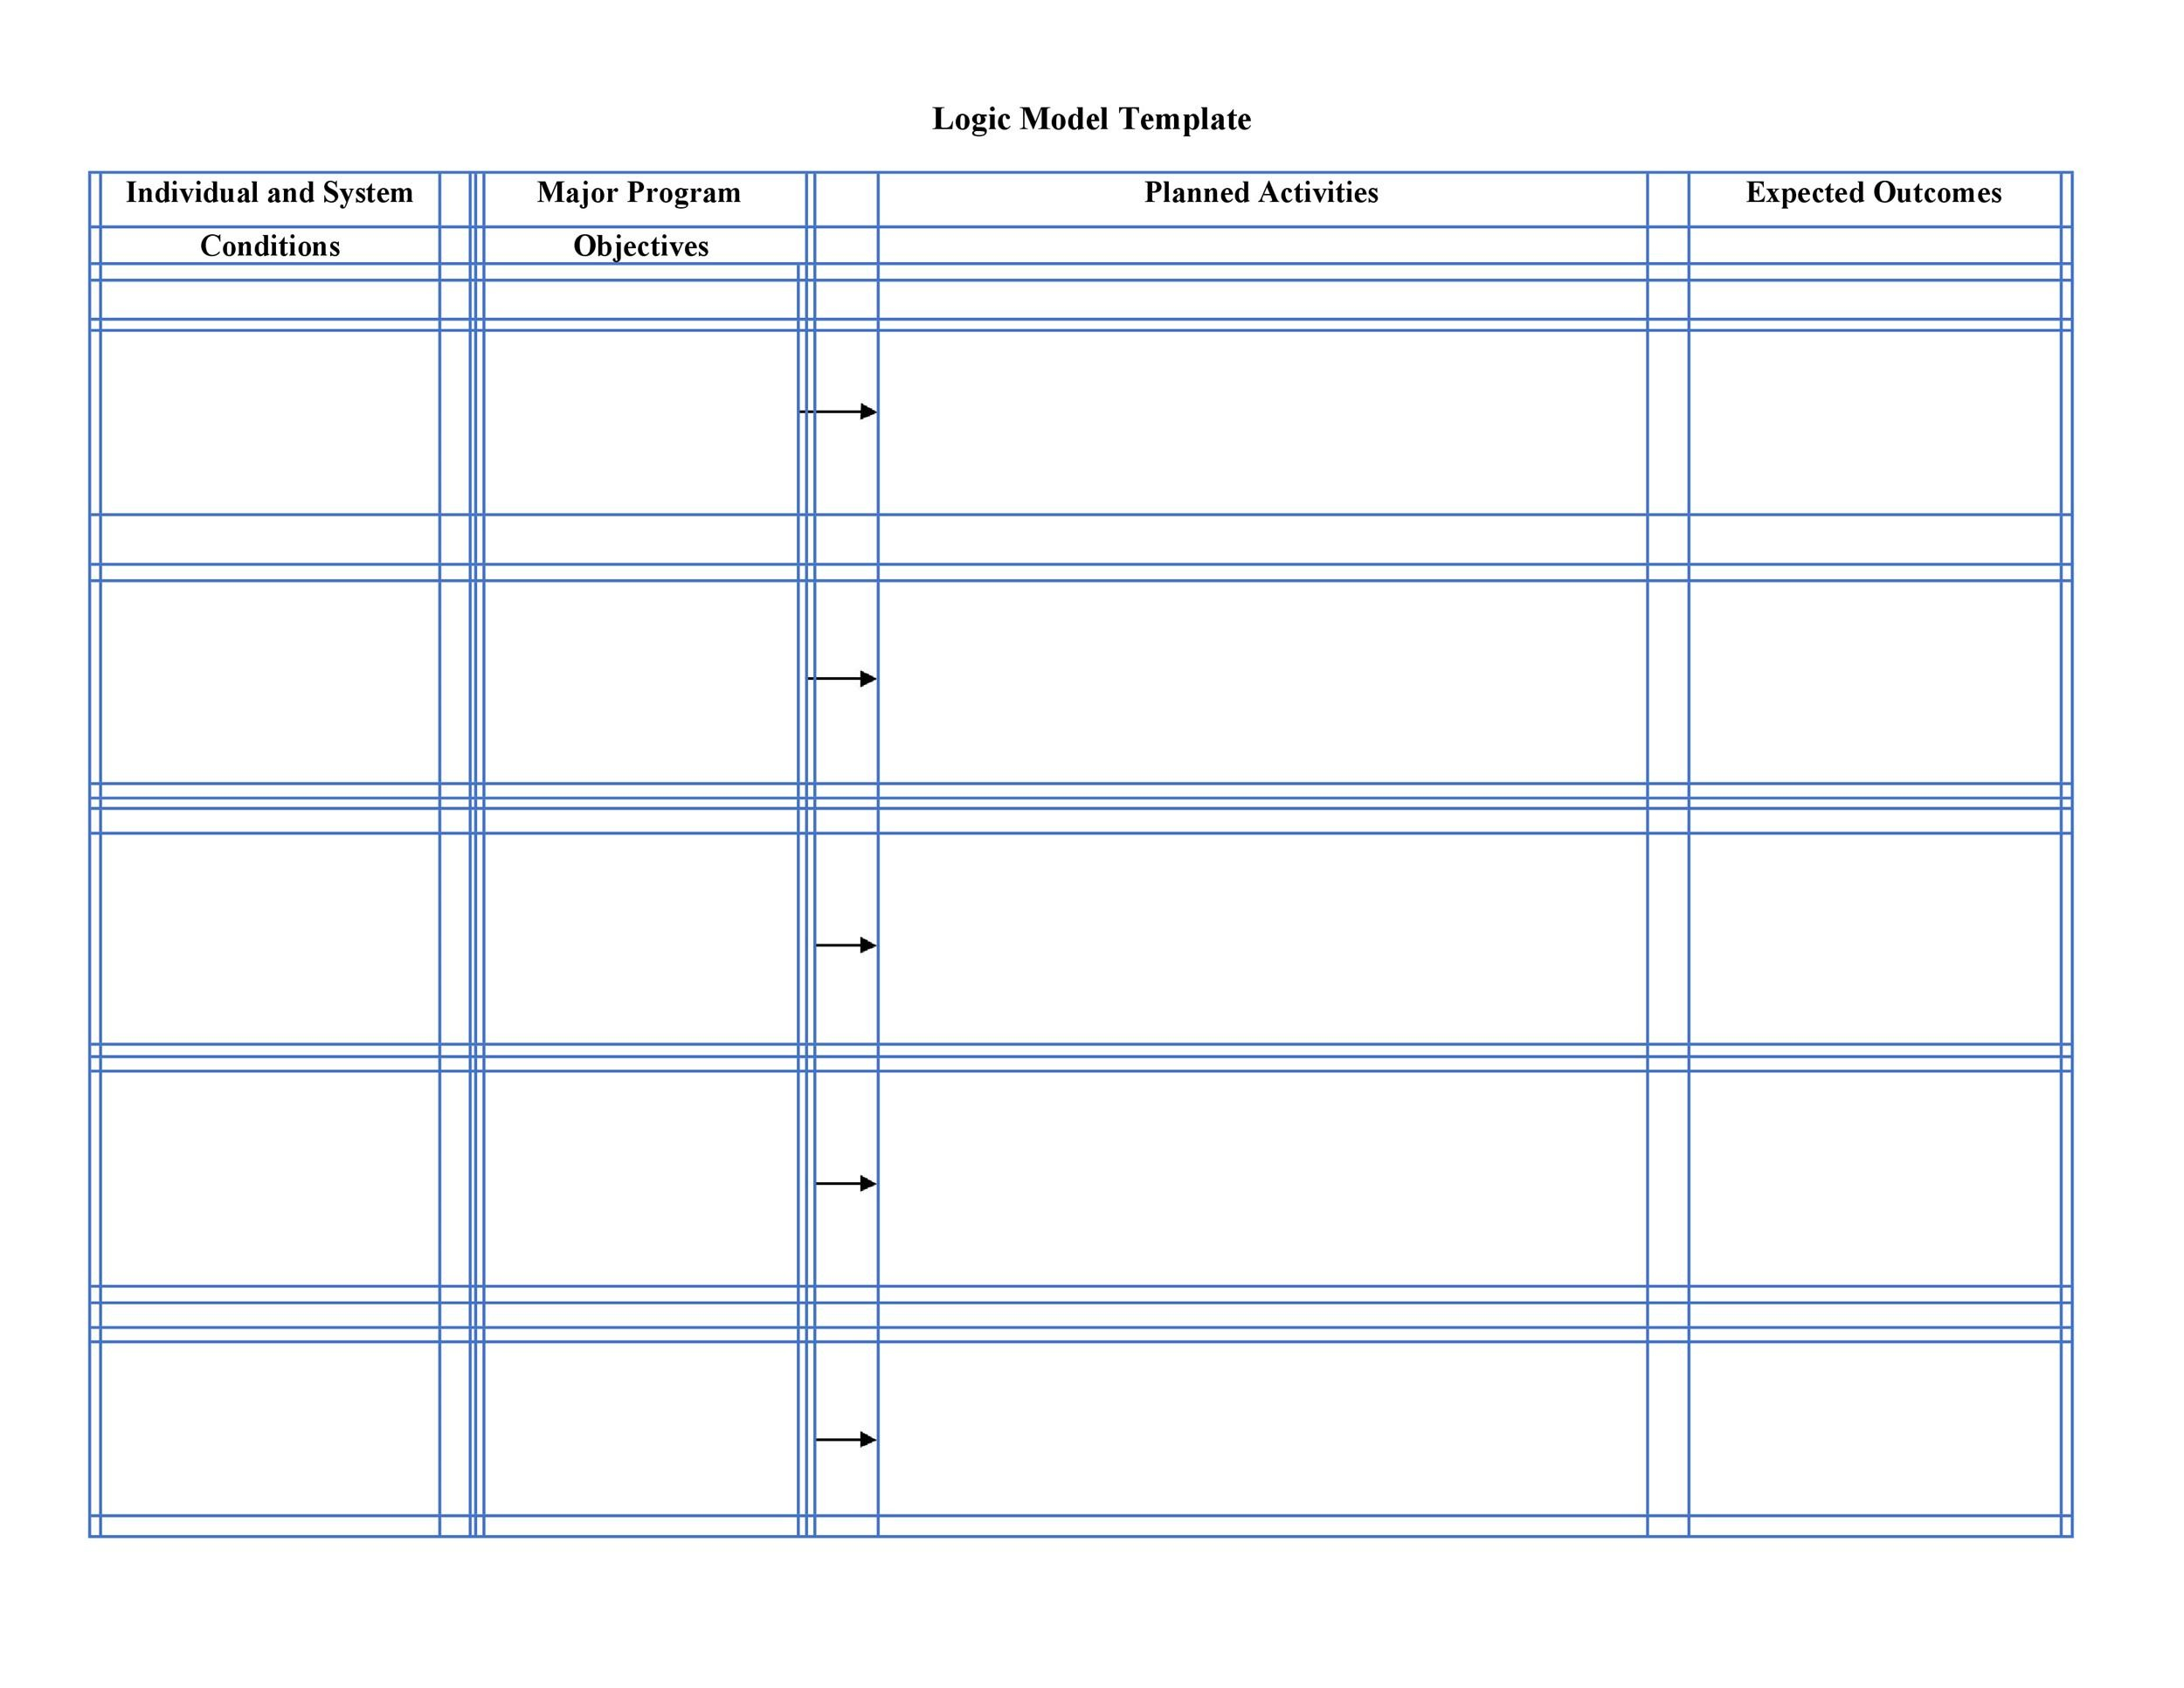 More than 40 Logic Model Templates  Examples - Template Lab